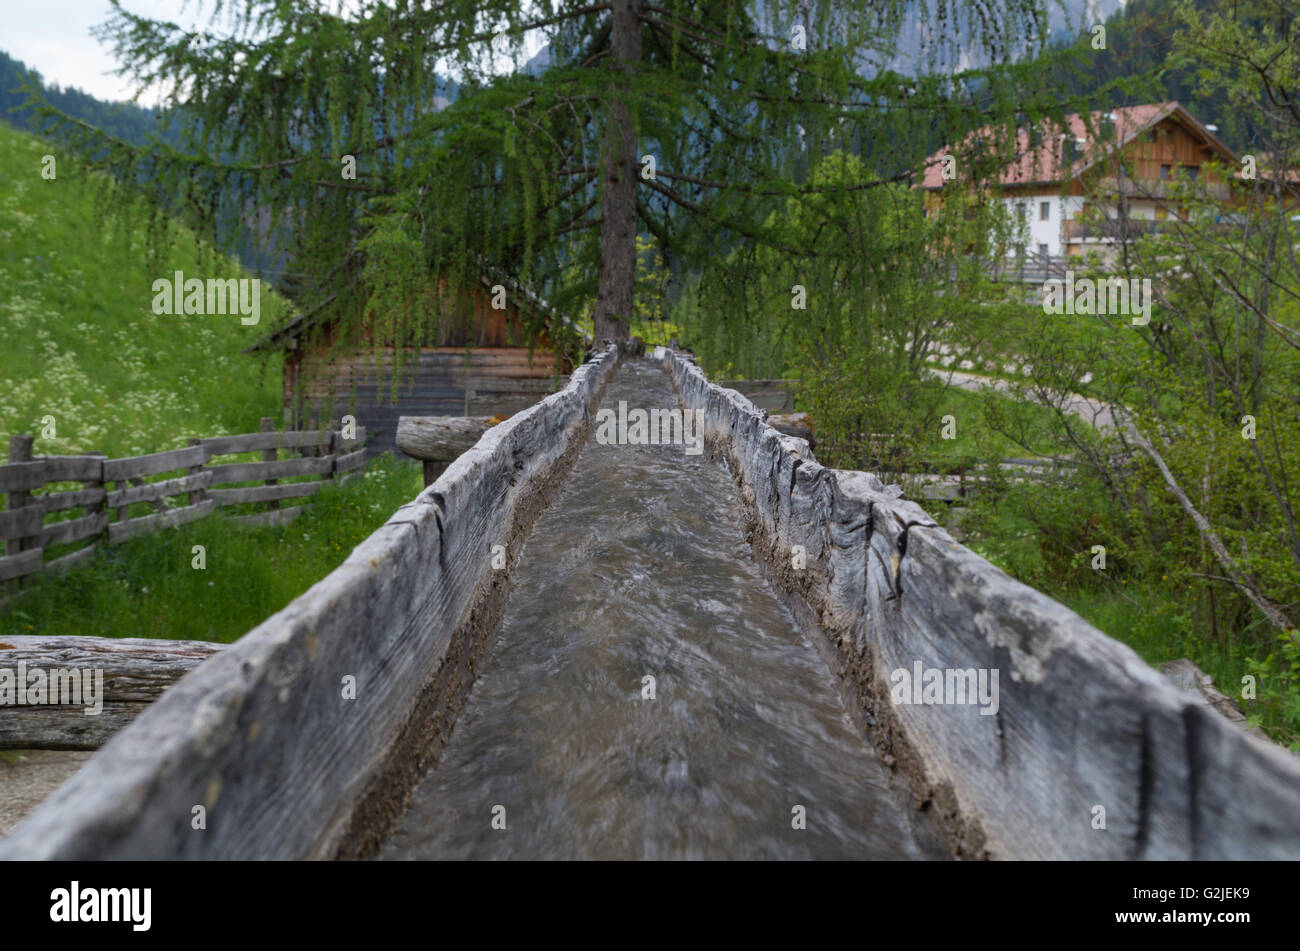 Original wooden irrigation water channel of a mill in italy - Stock Image